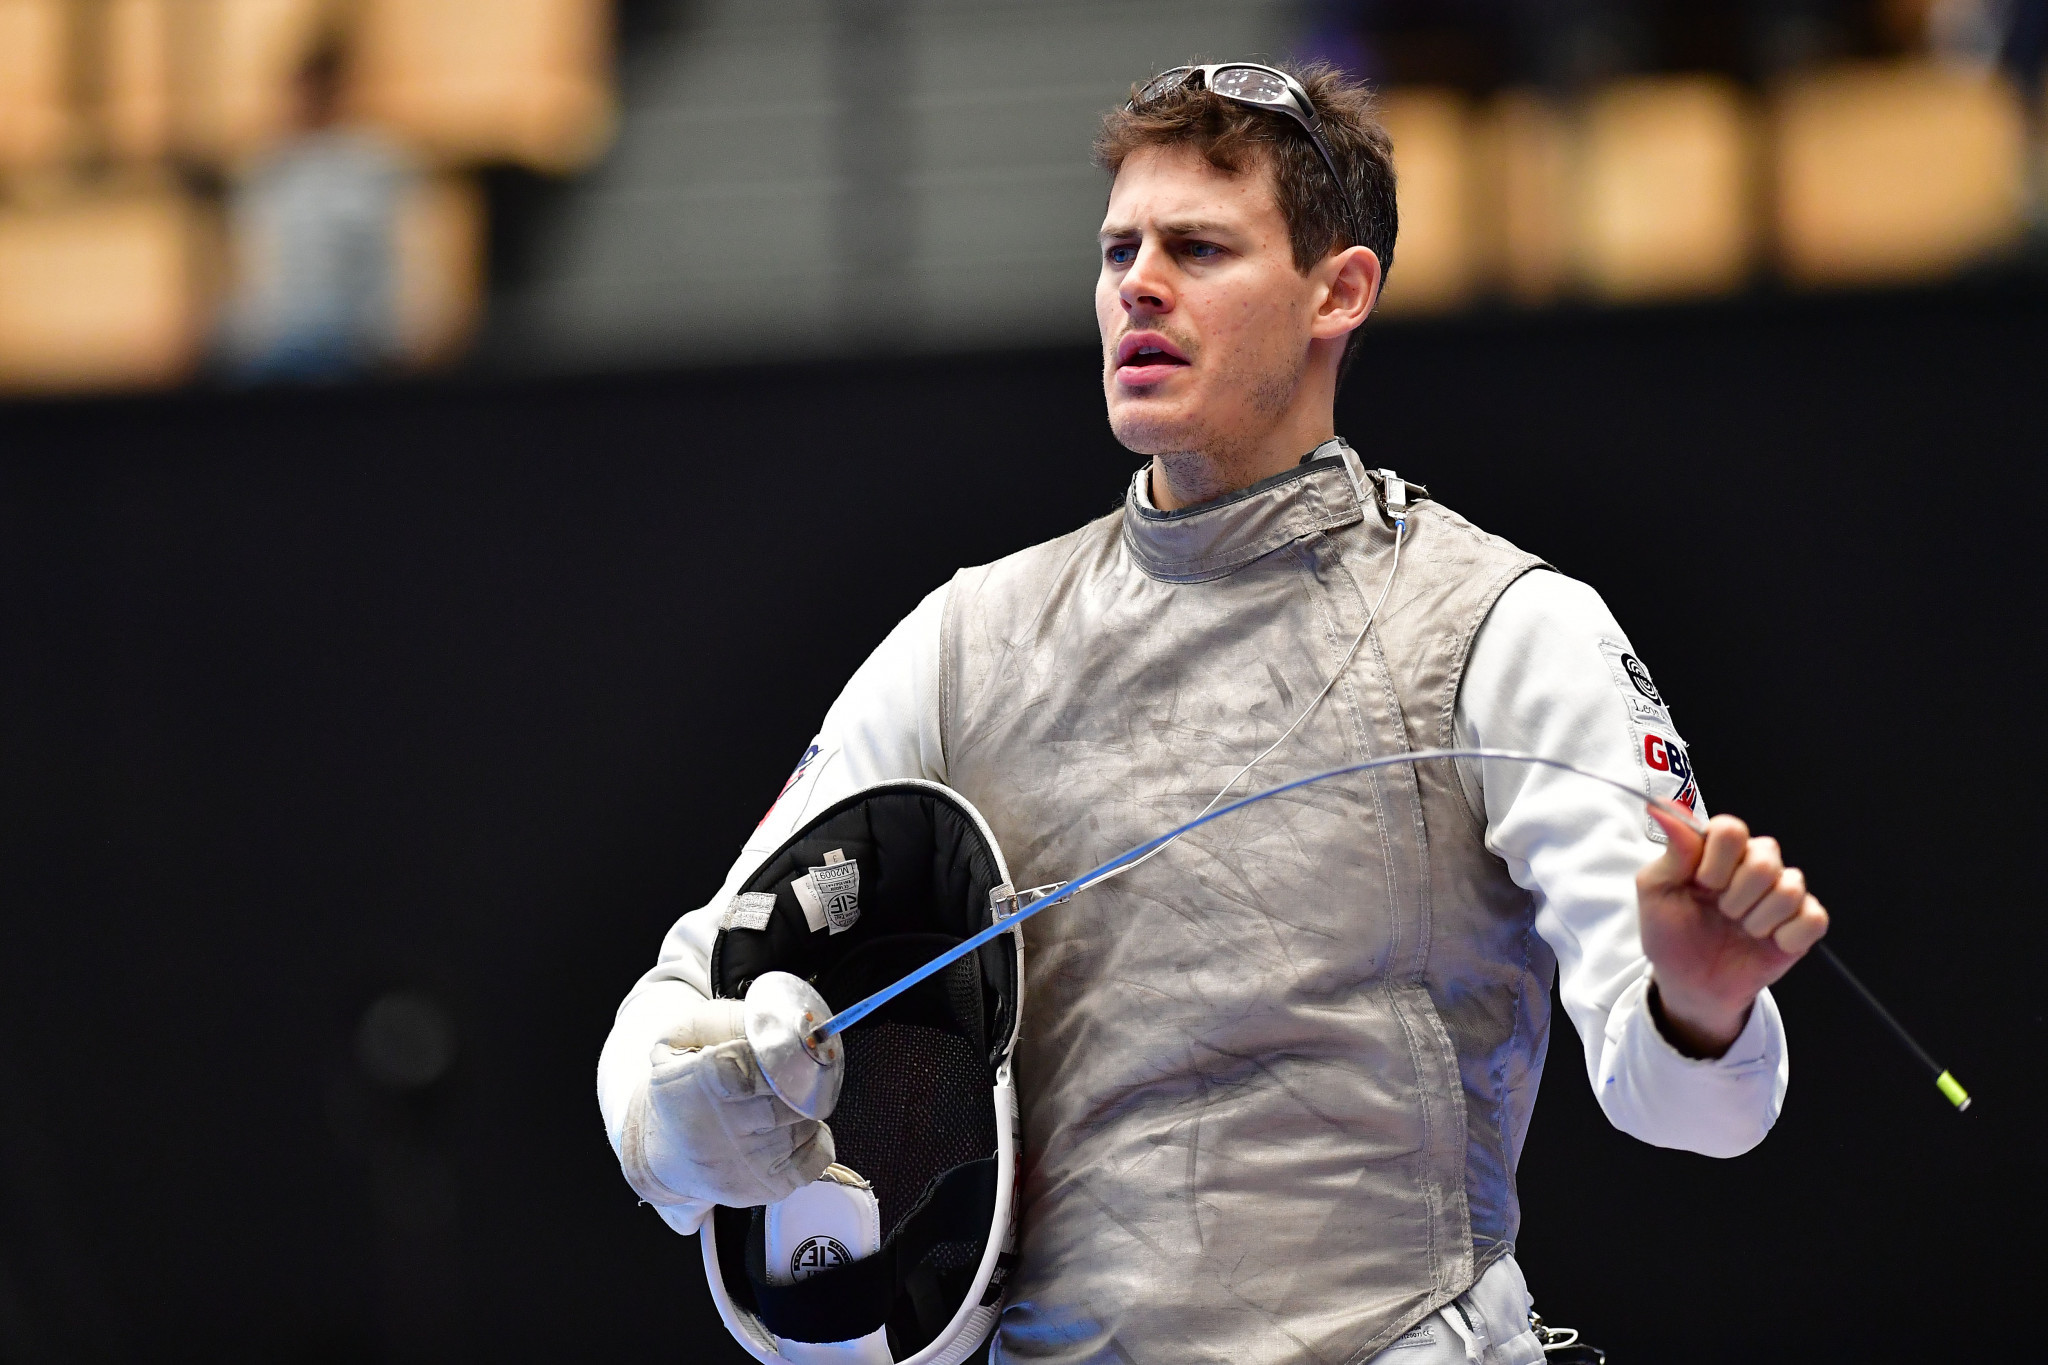 Kruse wins at FIE Foil World Cup in Tokyo to become Britain's first world number one